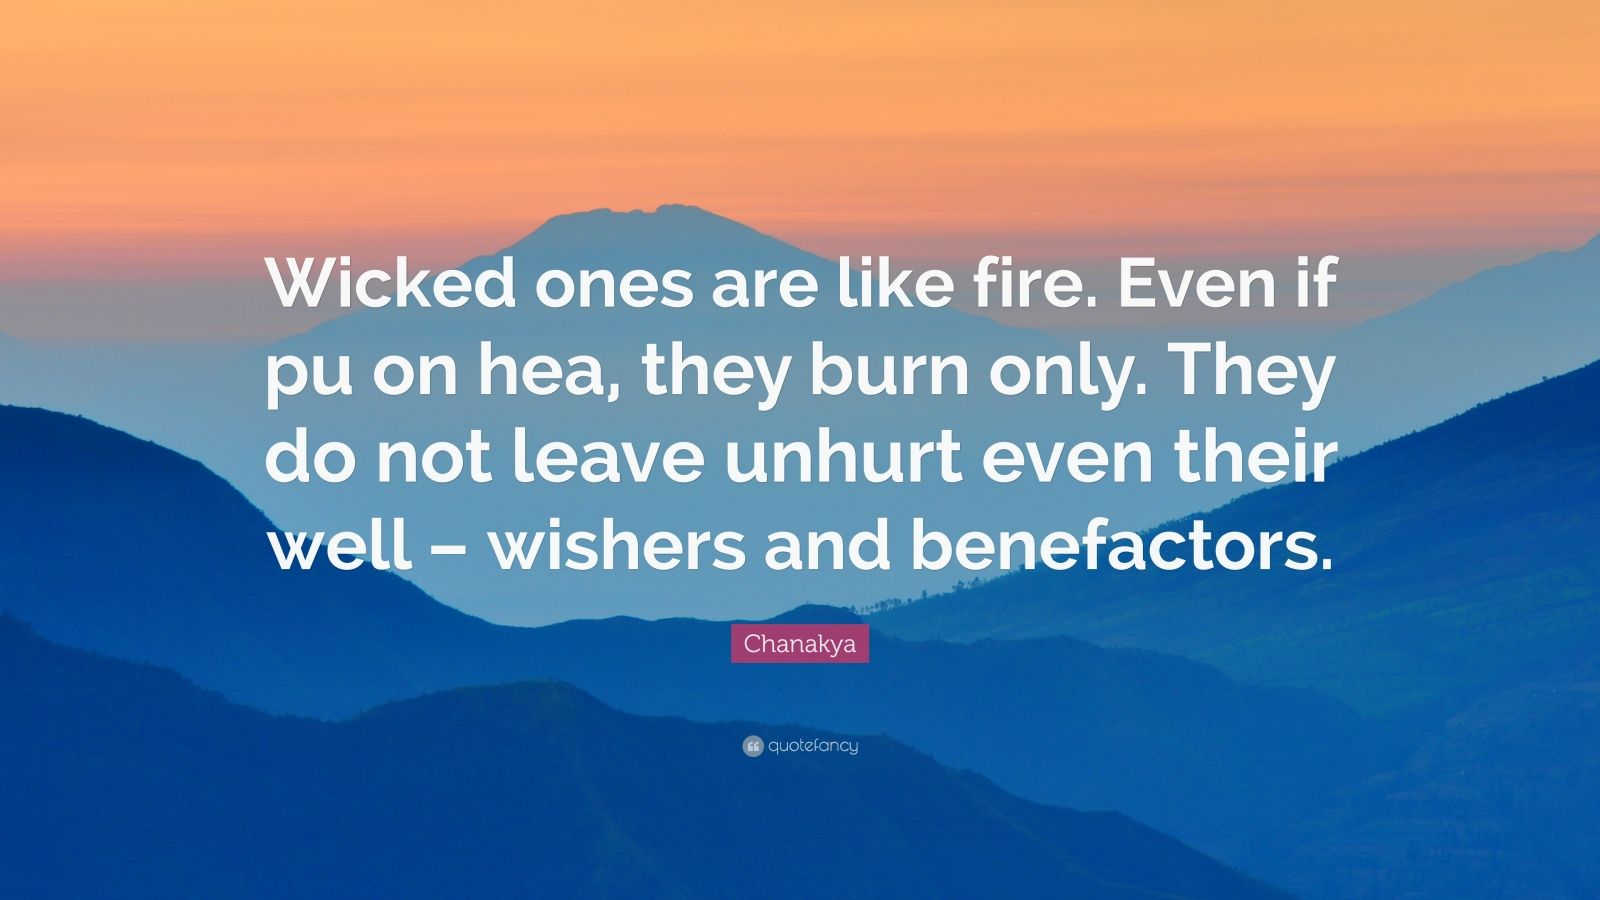 """Chanakya Quote: """"Wicked ones are like fire. Even if pu on hea, they burn only. They do not leave unhurt even their well – wishers and benefactors."""""""